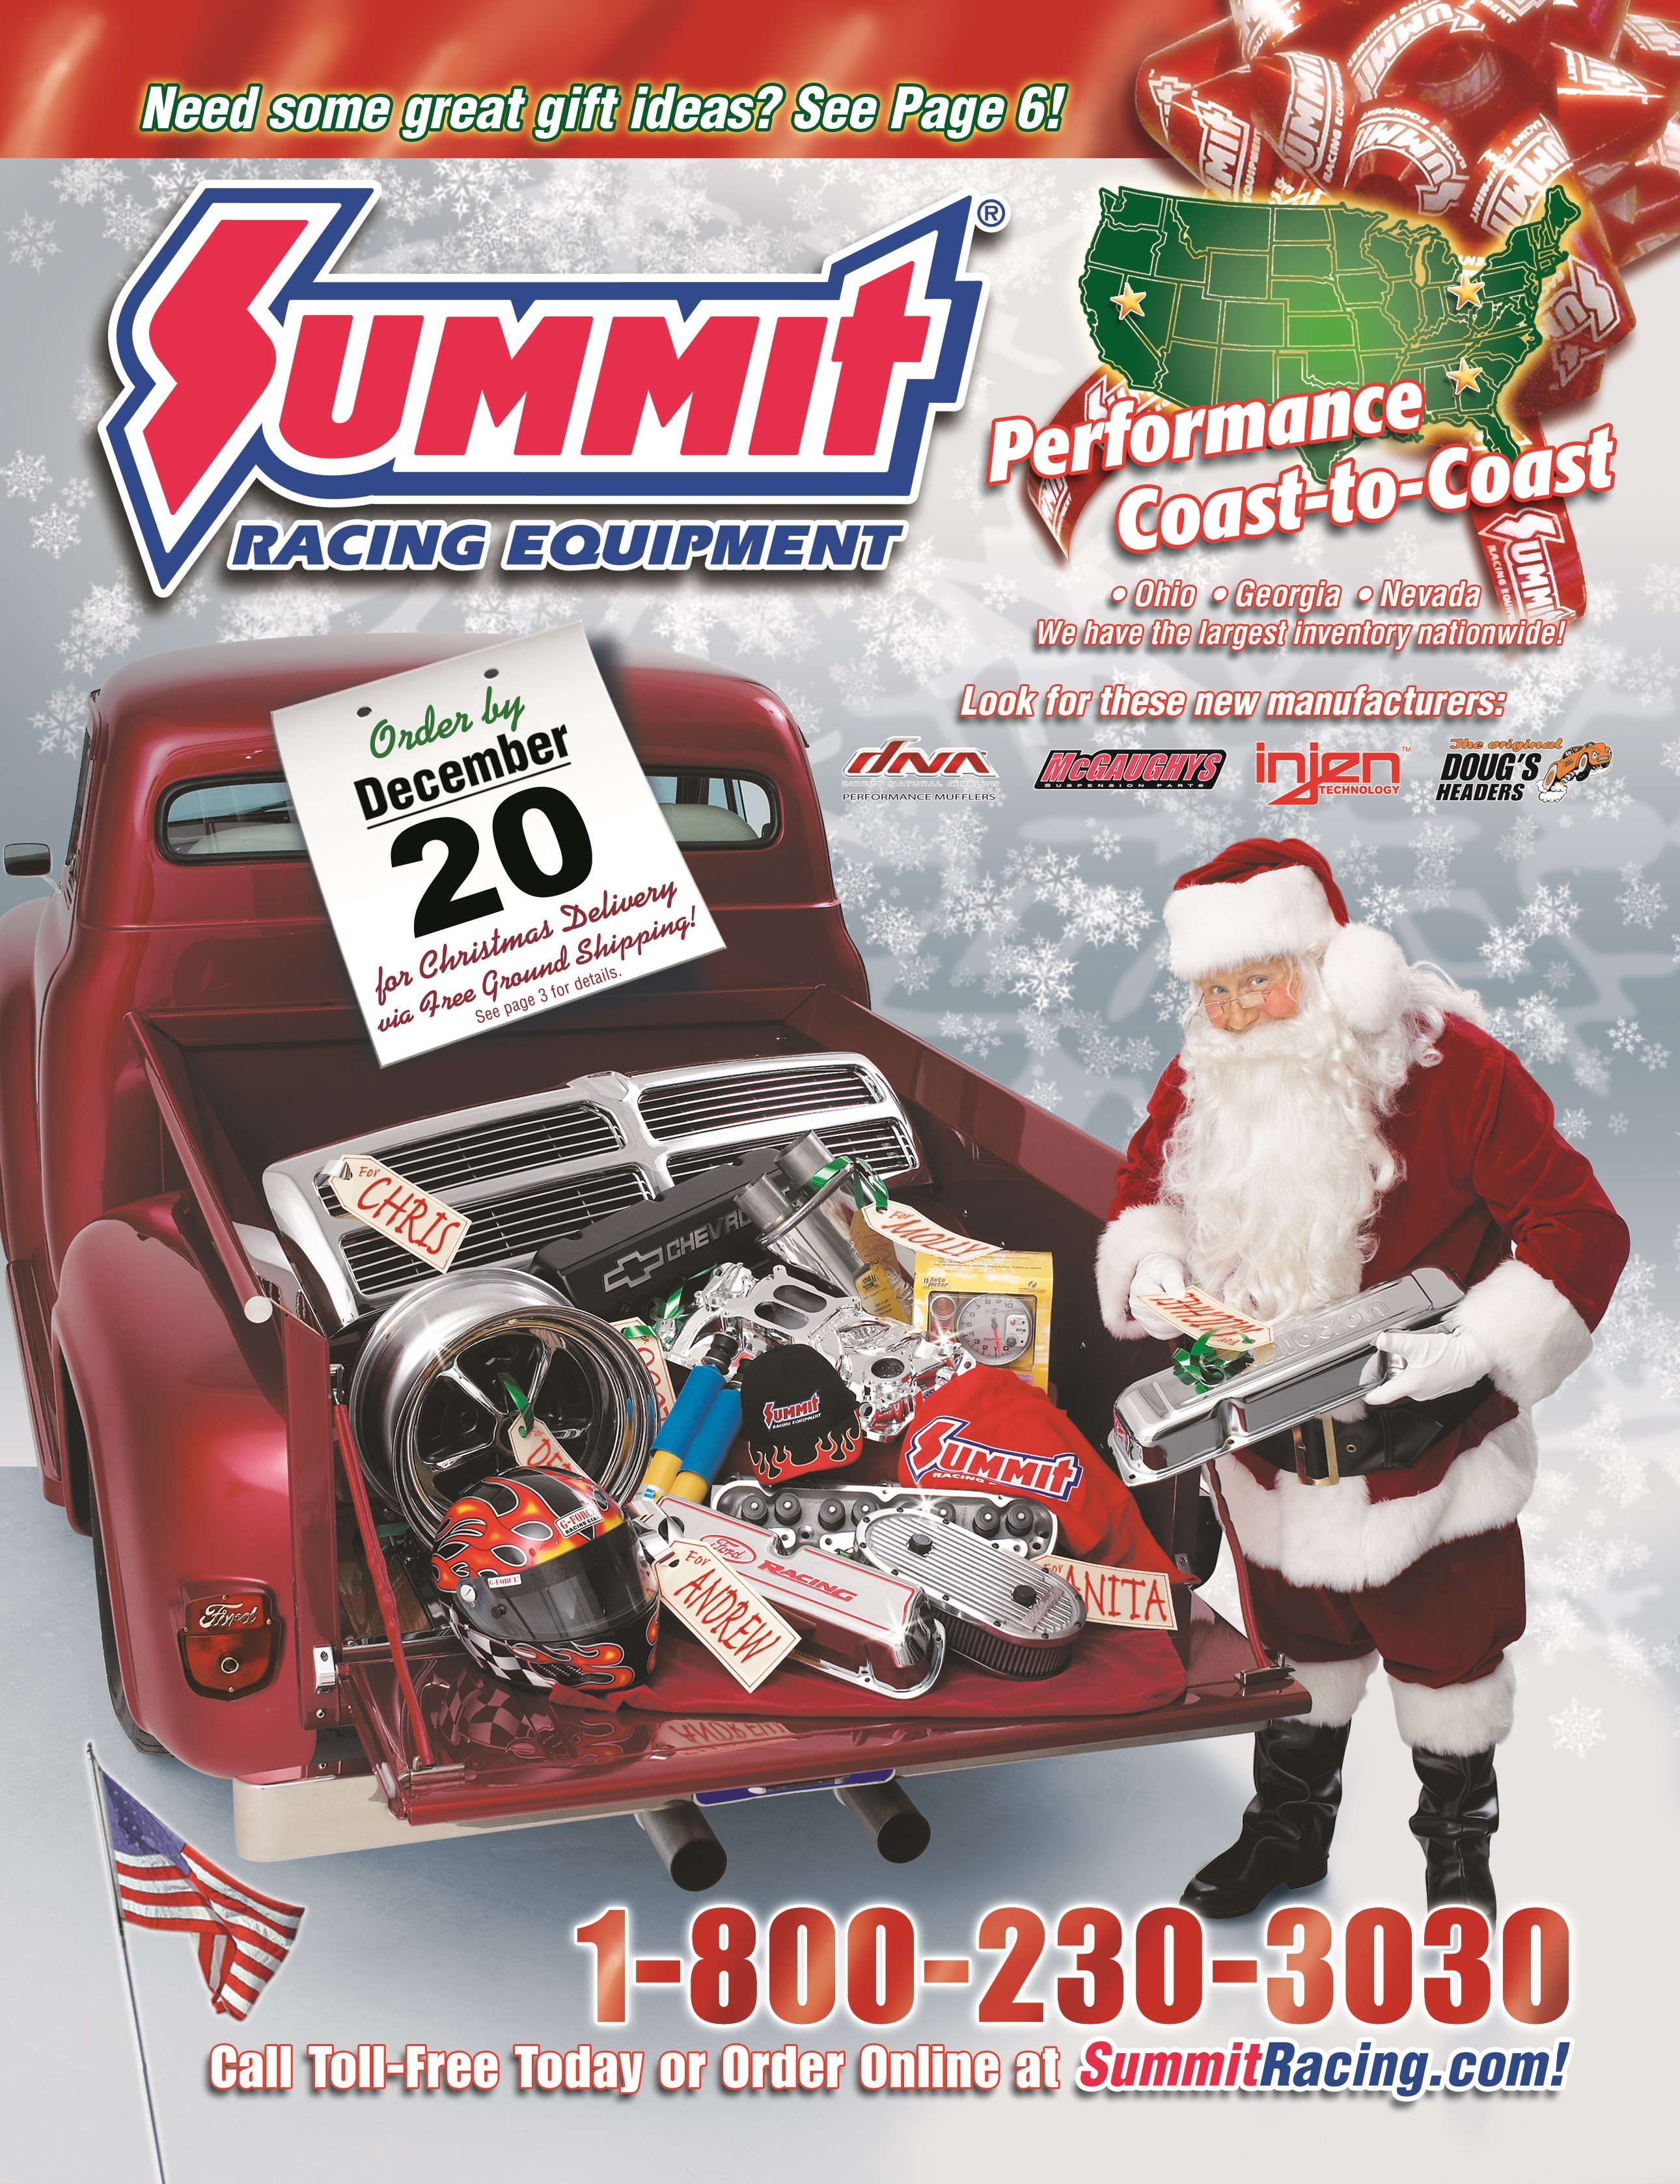 The free catalog at Summit Racing gives you the choices many other car parts retailers do not have. If there's a performance auto part for your car, chances are you can find it in Summit Racing's catalog.